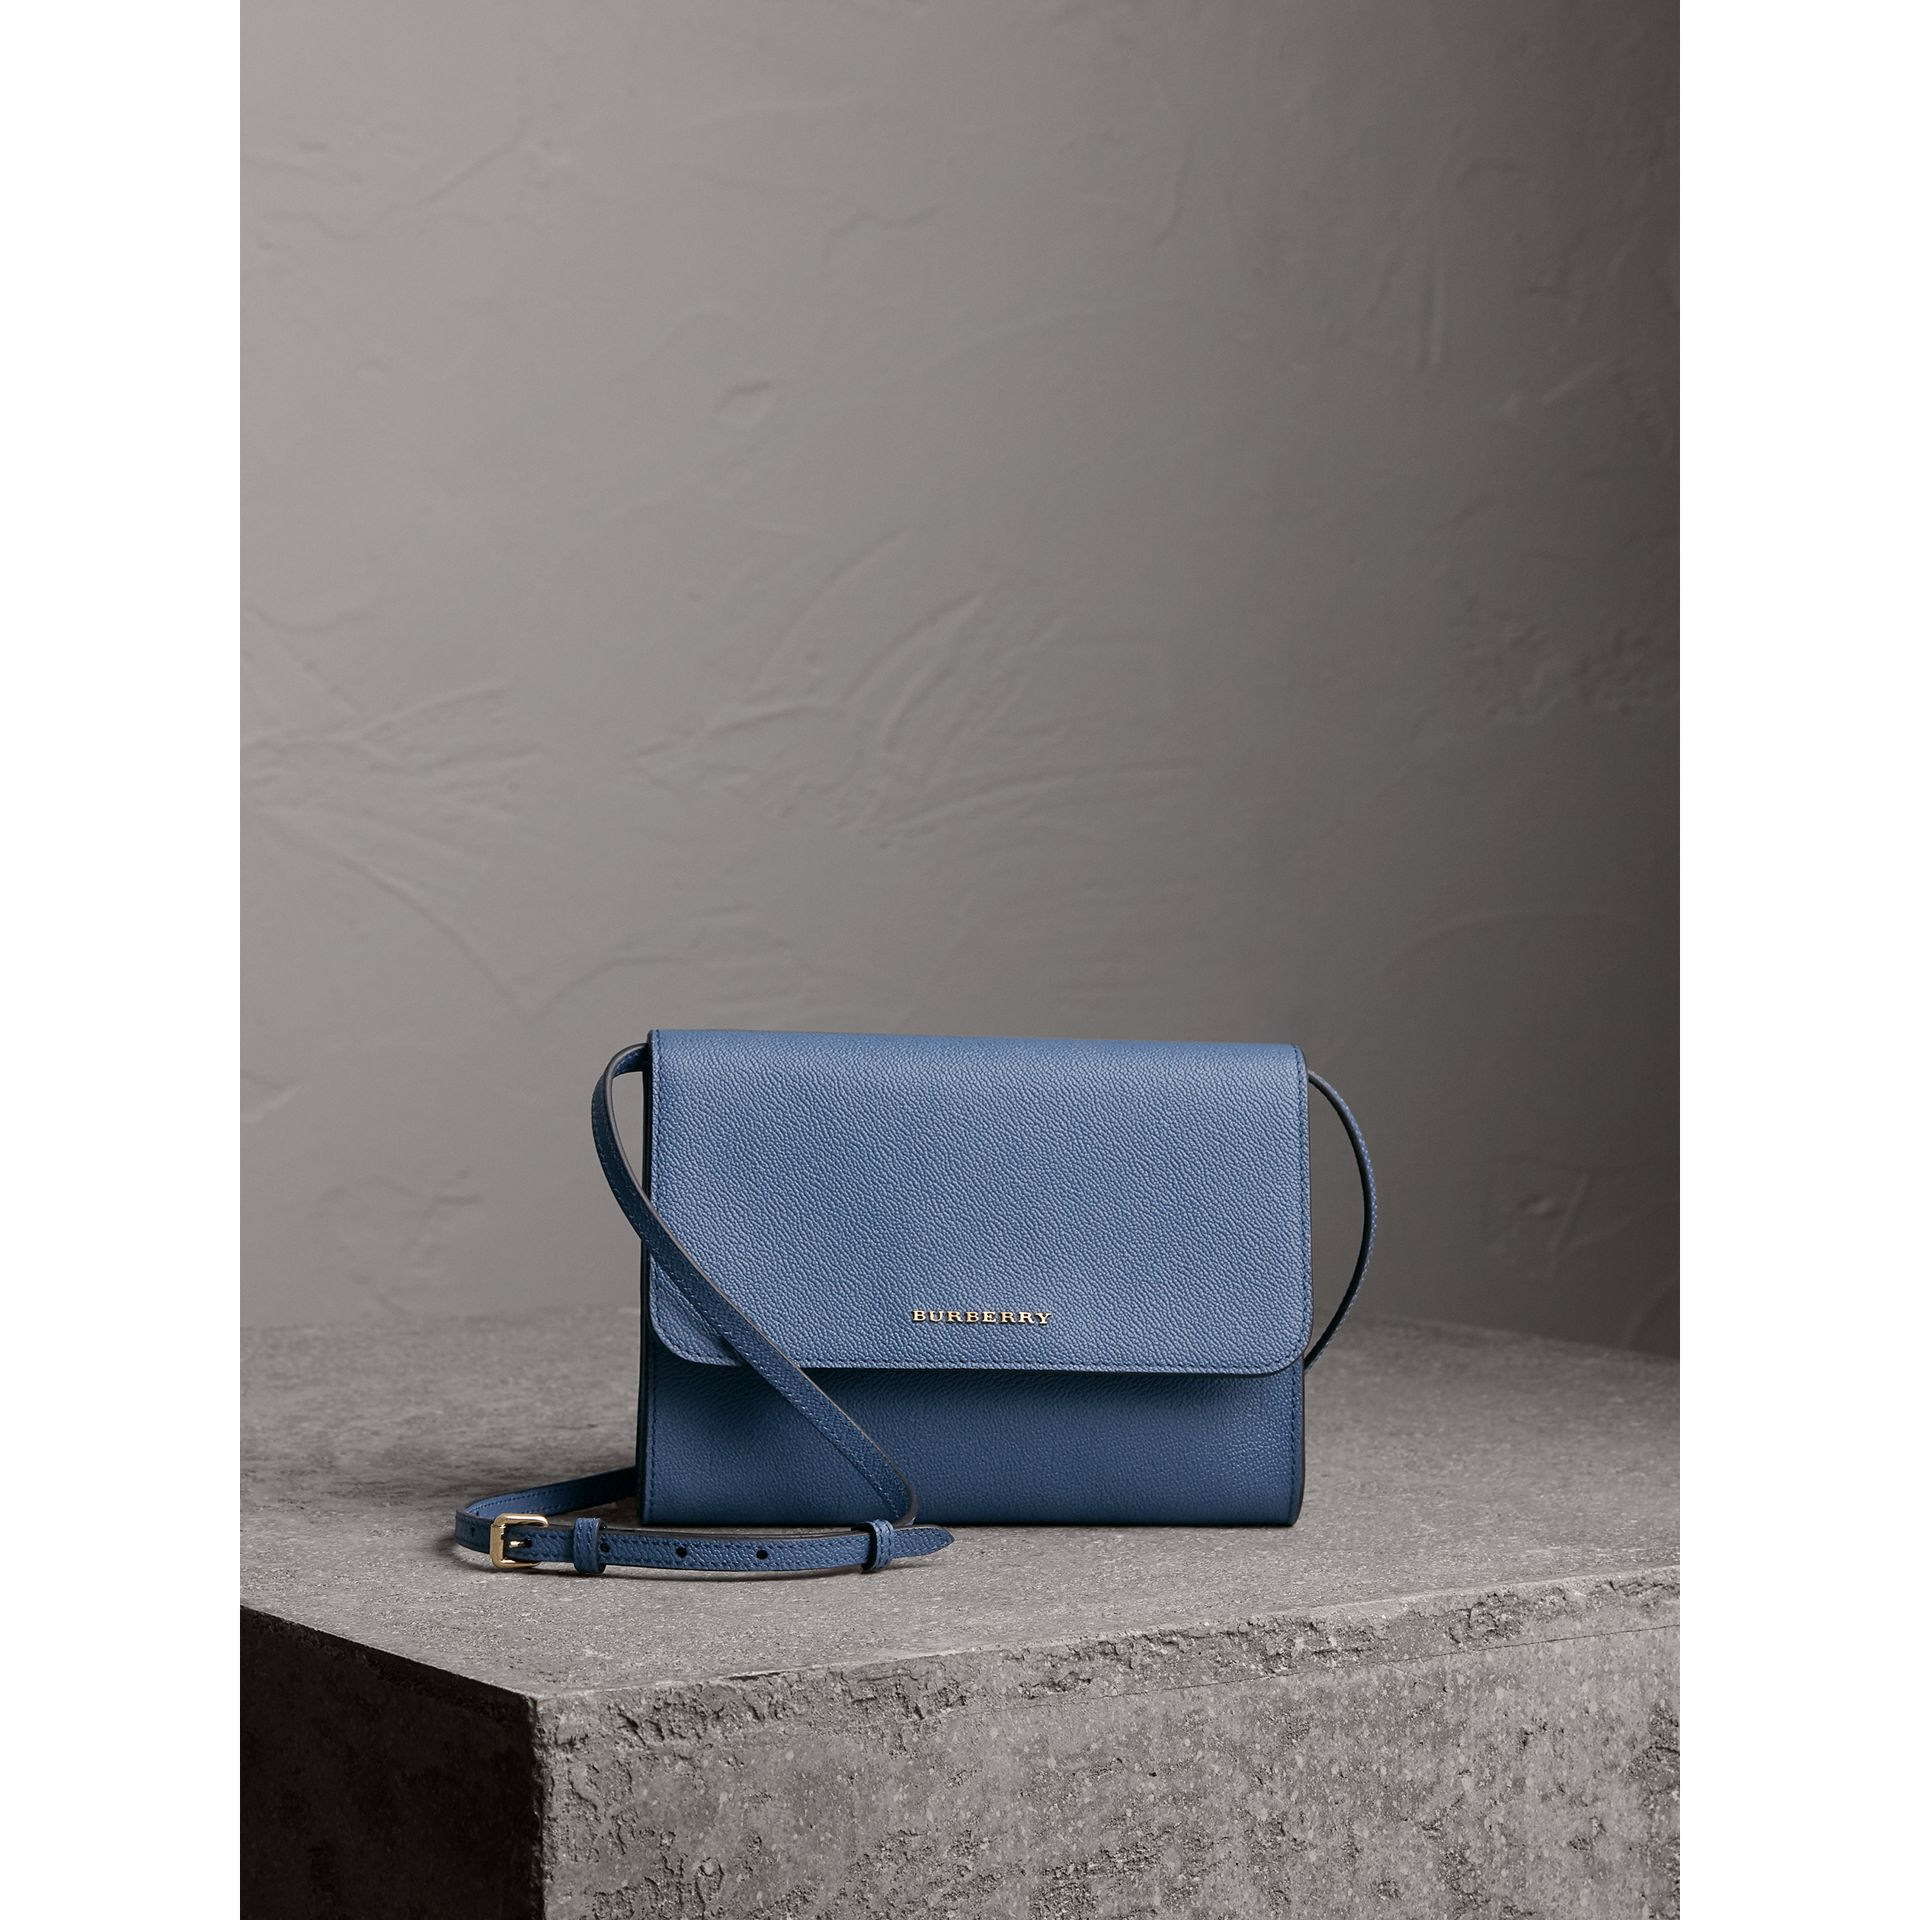 Grainy Leather Crossbody Bag in Steel Blue - Women | Burberry - gallery image 7